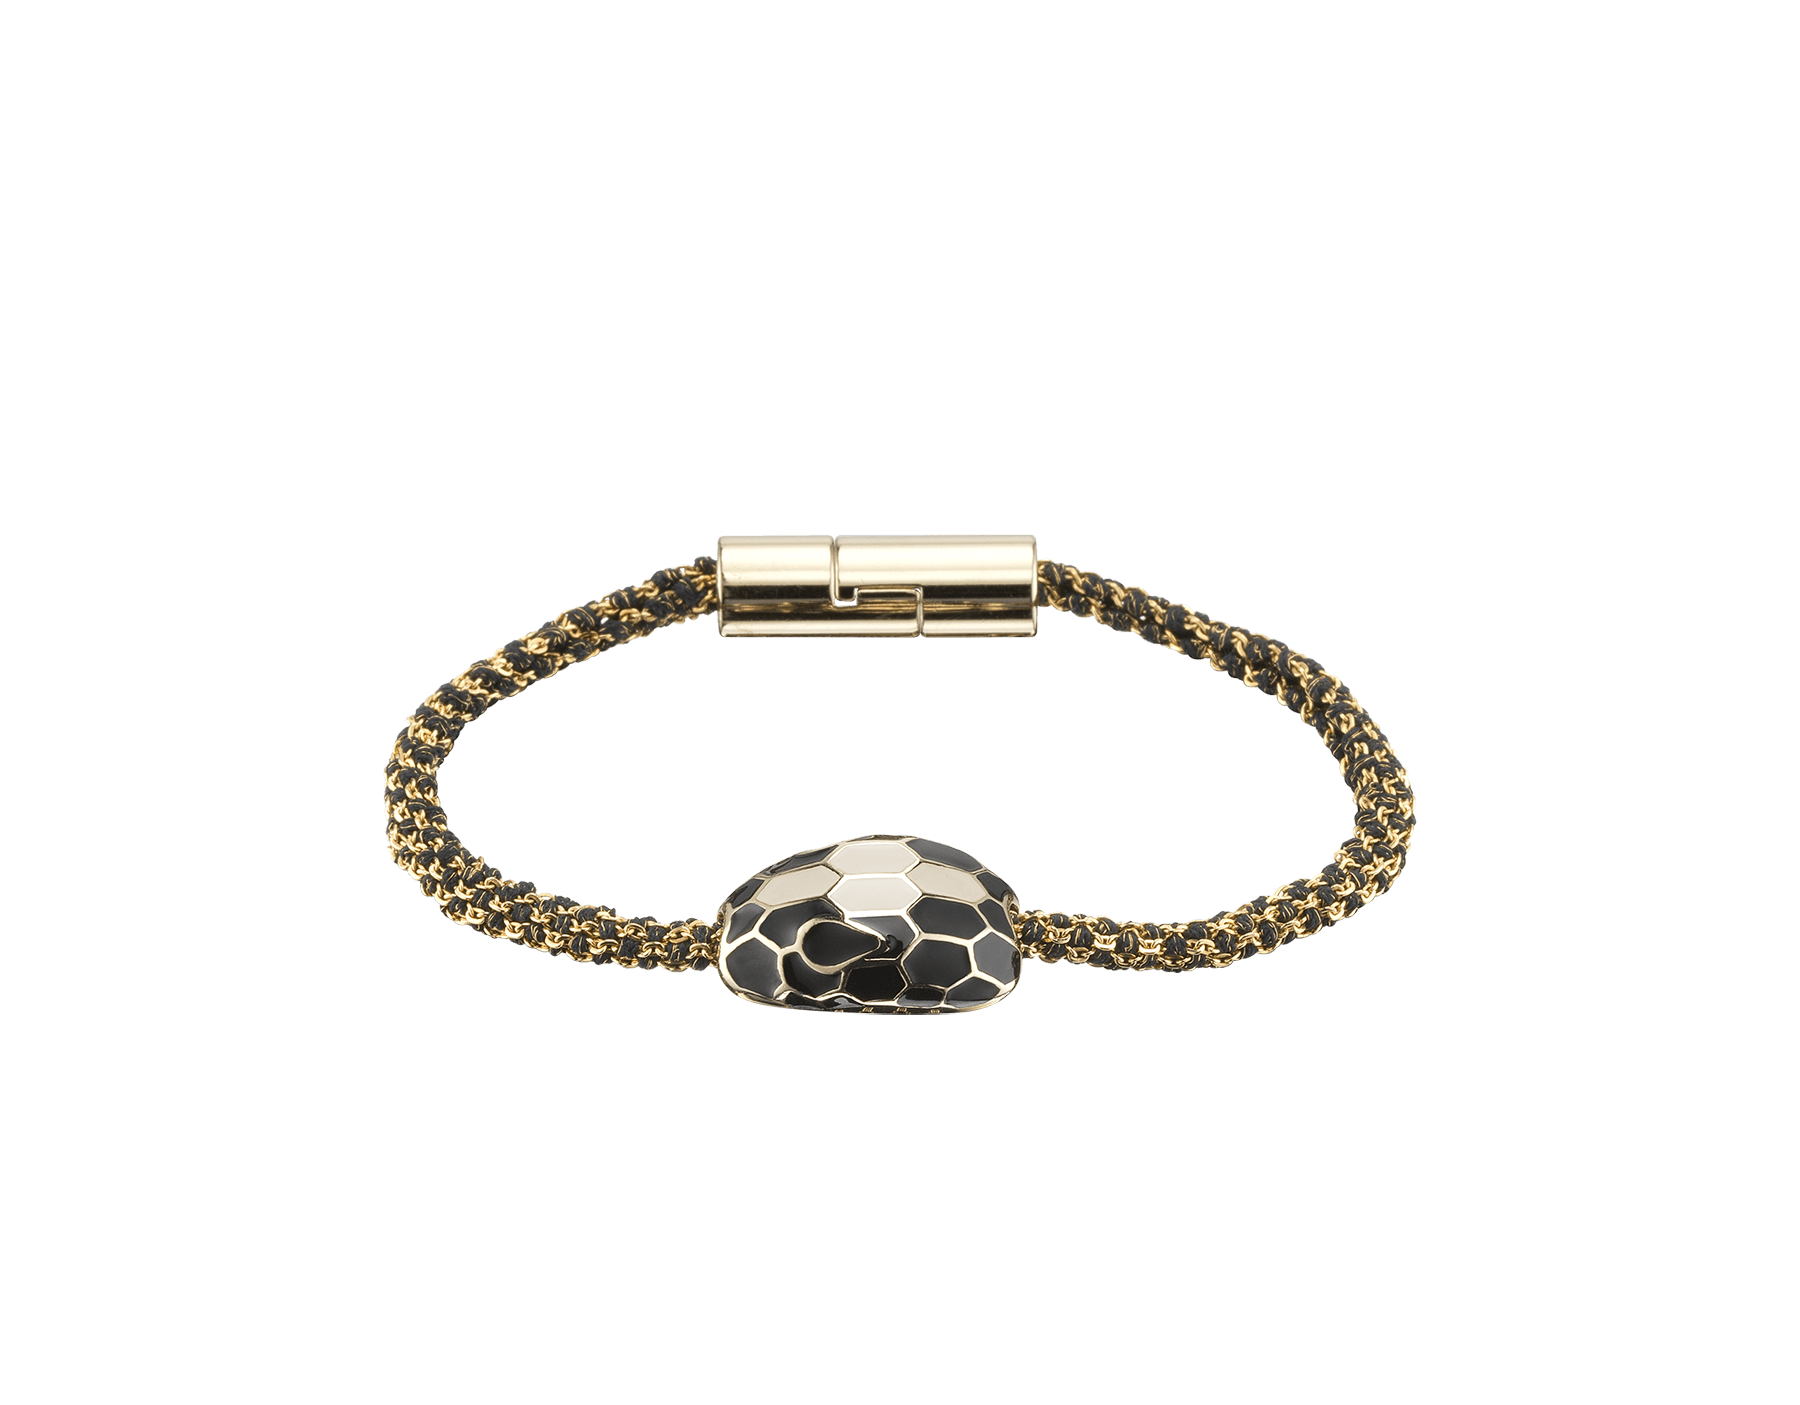 Serpenti Forever bracelet in black metallic woven silk with an iconic snake head décor in black and white enamel. RollingChain-S-B image 1